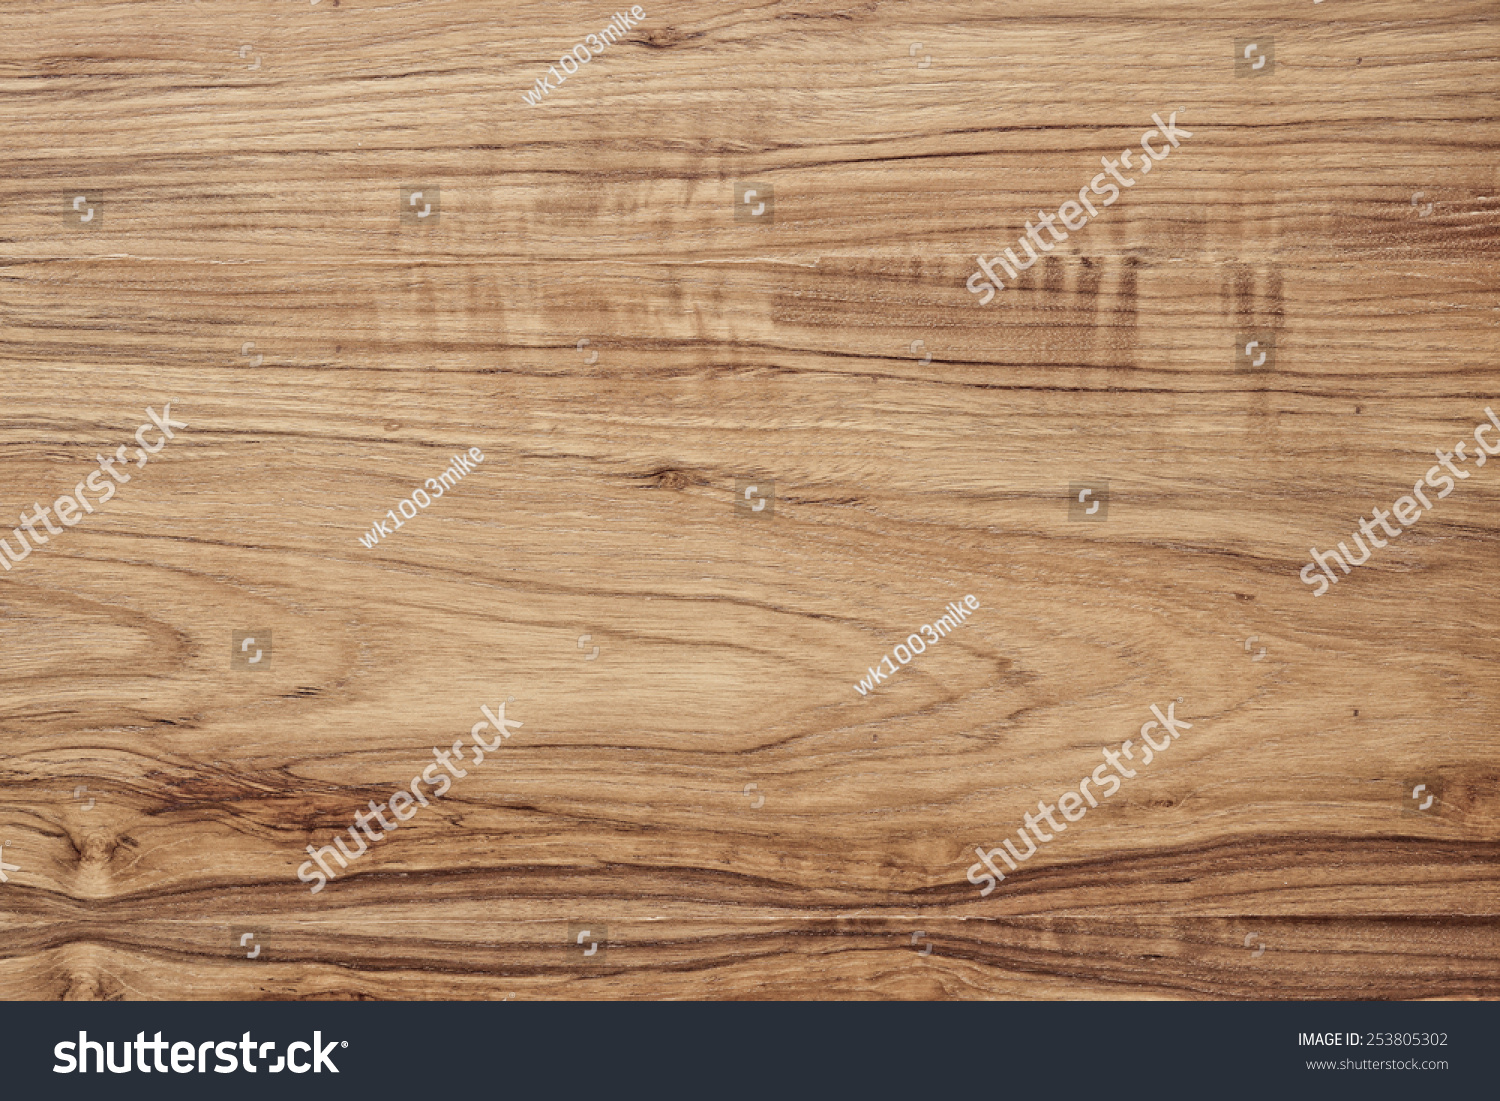 wood texture with natural wood pattern #253805302